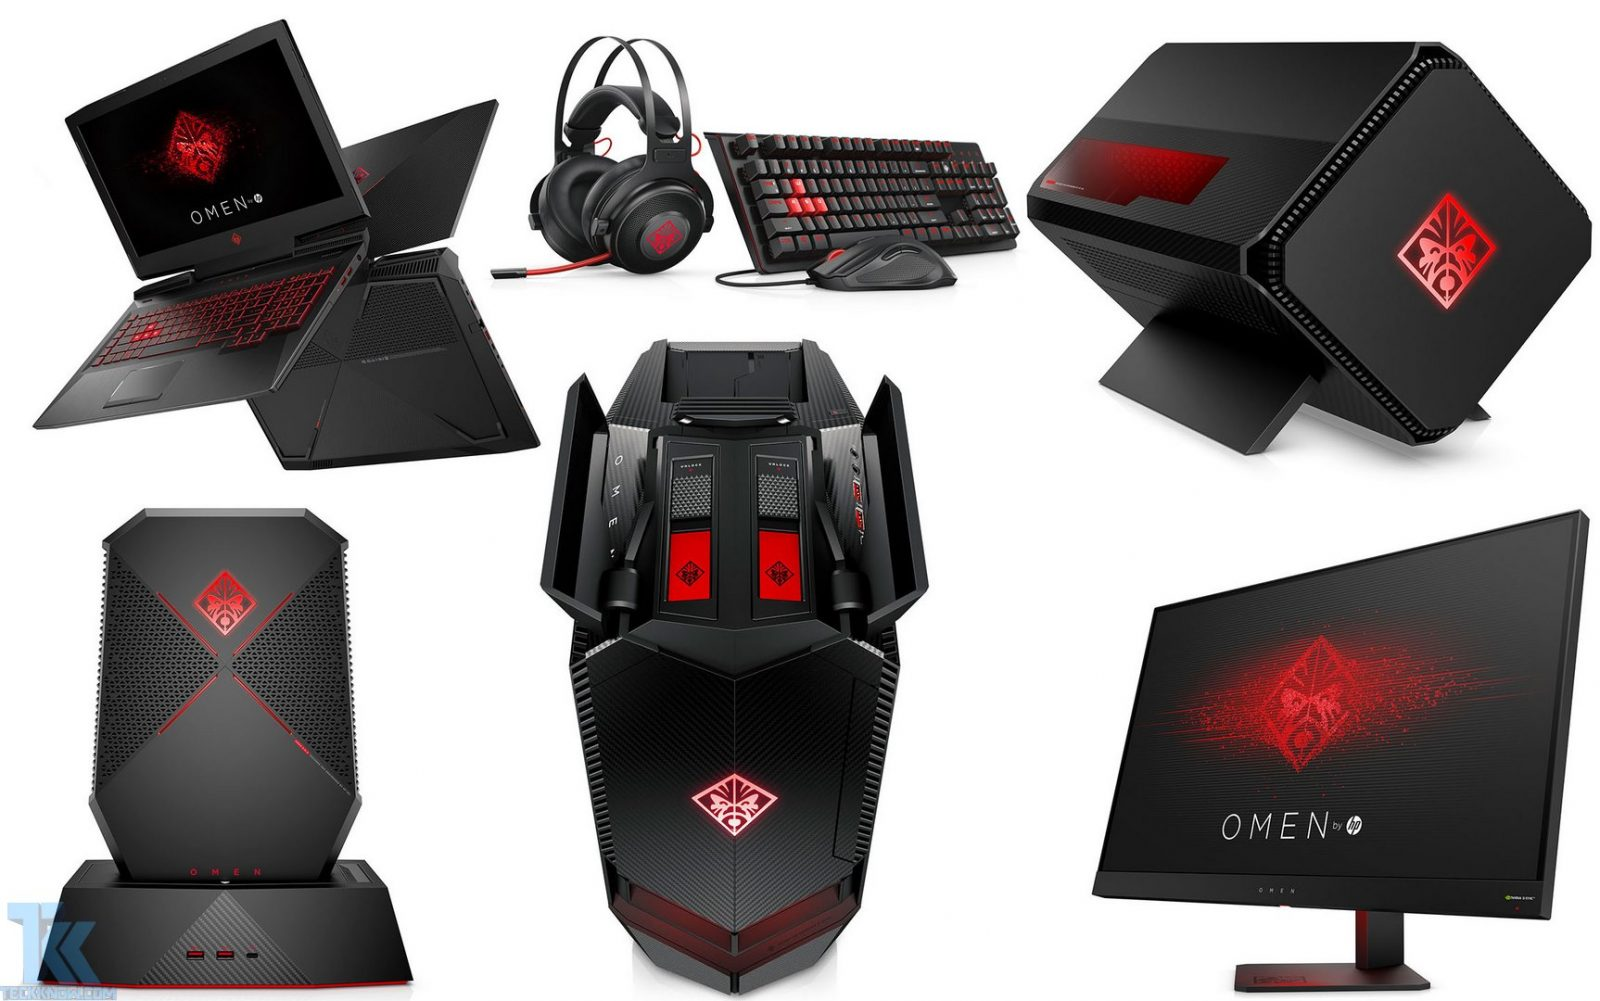 9b39c72b24f Every inch inside and out of the new OMEN PCs, displays and accessories are  packed with features designed to target the needs of gamers around the  world, ...